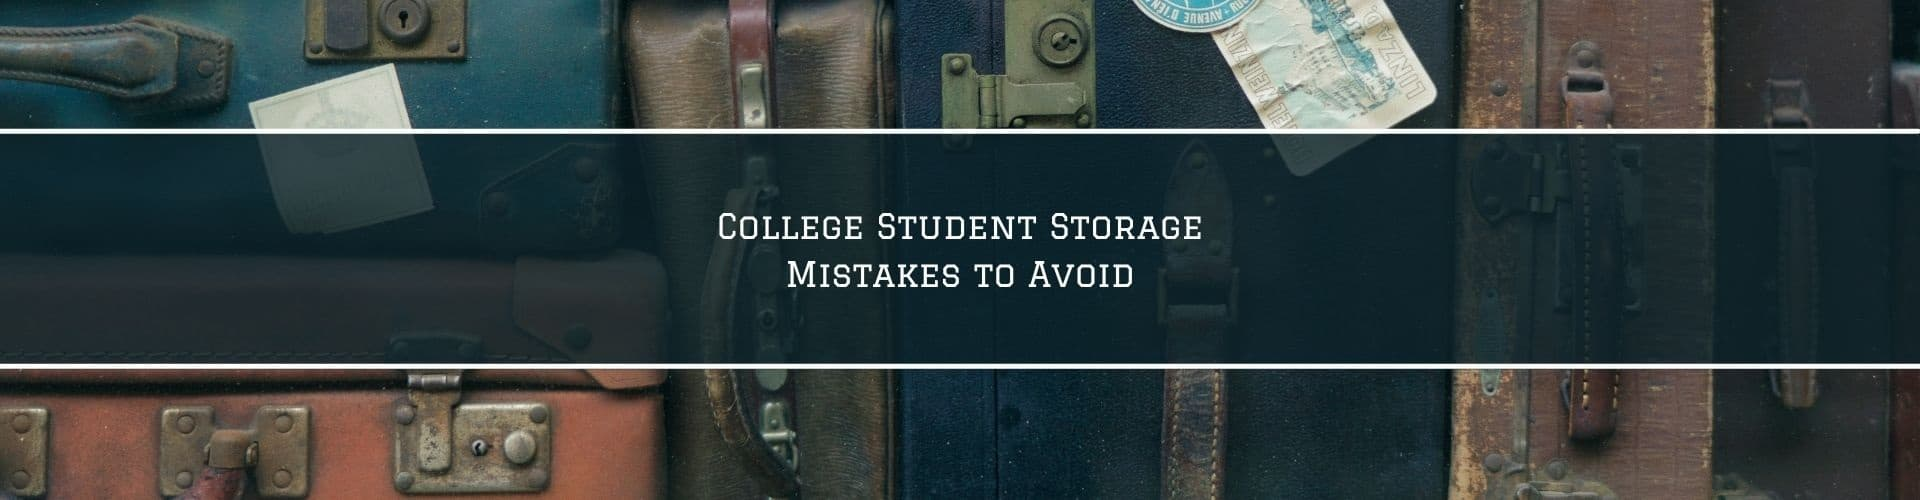 common college storage mistakes